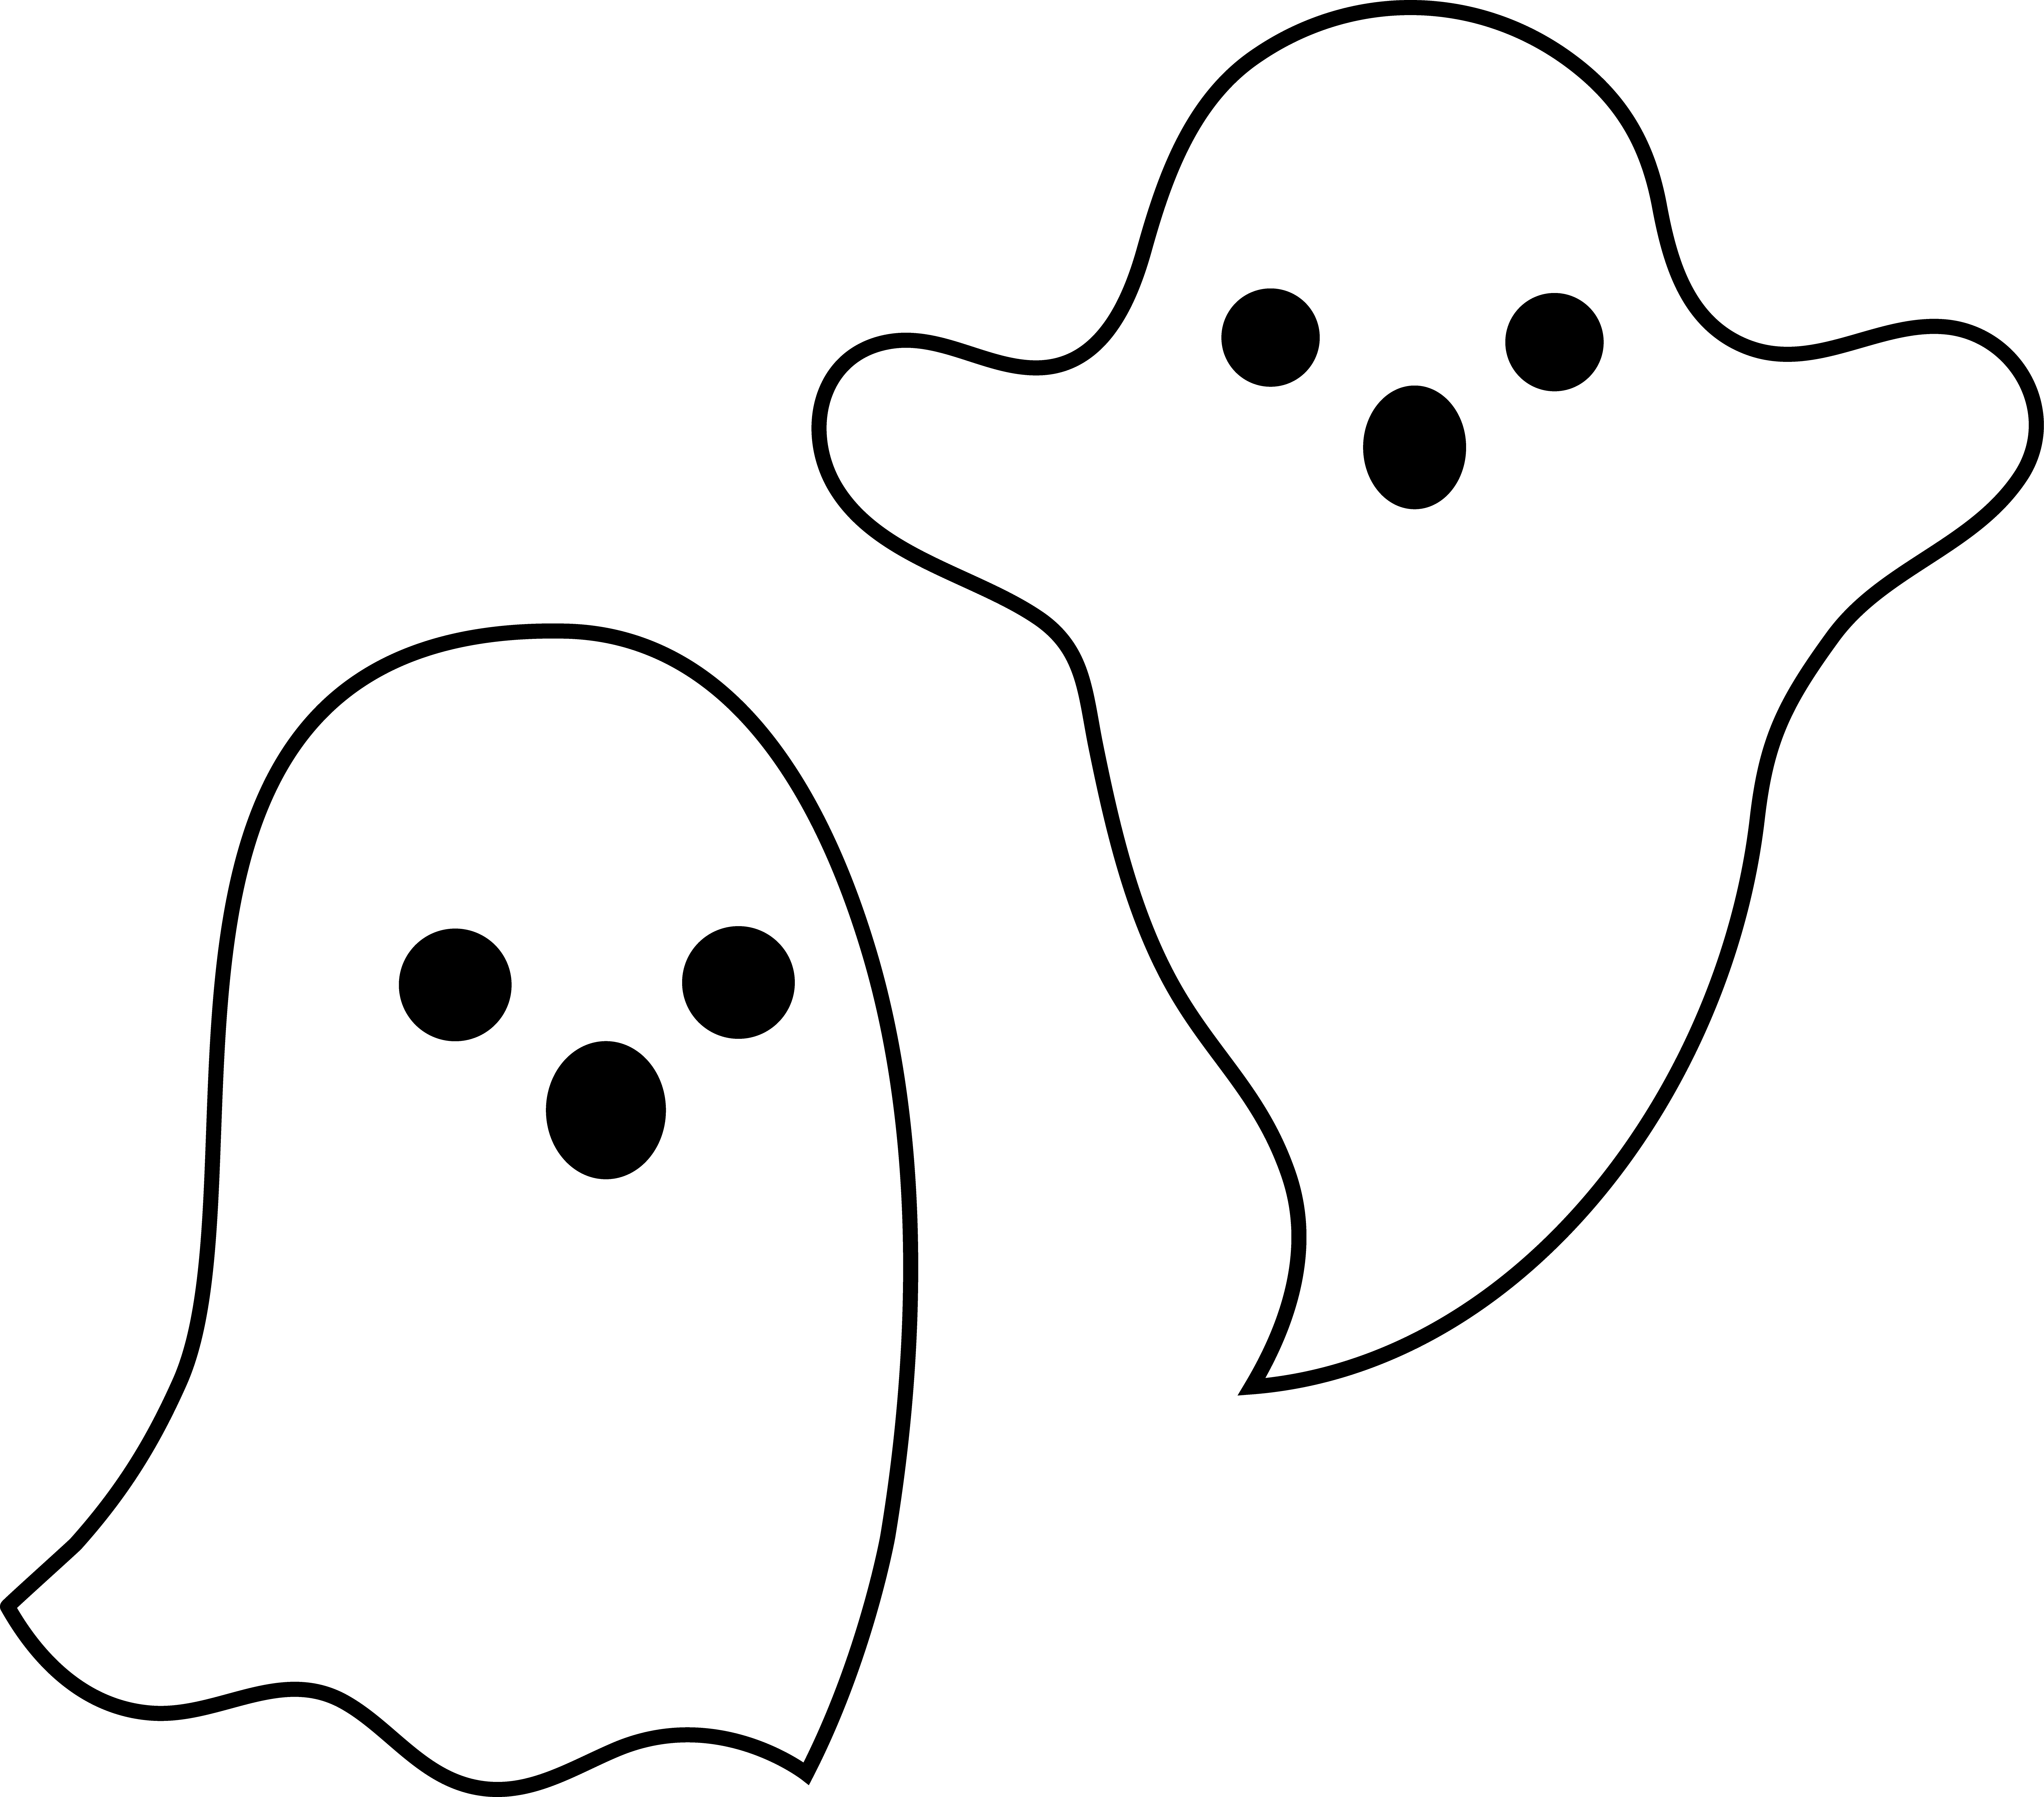 Spooky Halloween Spirits Cute Ghost Ghost Images Ghost Crafts